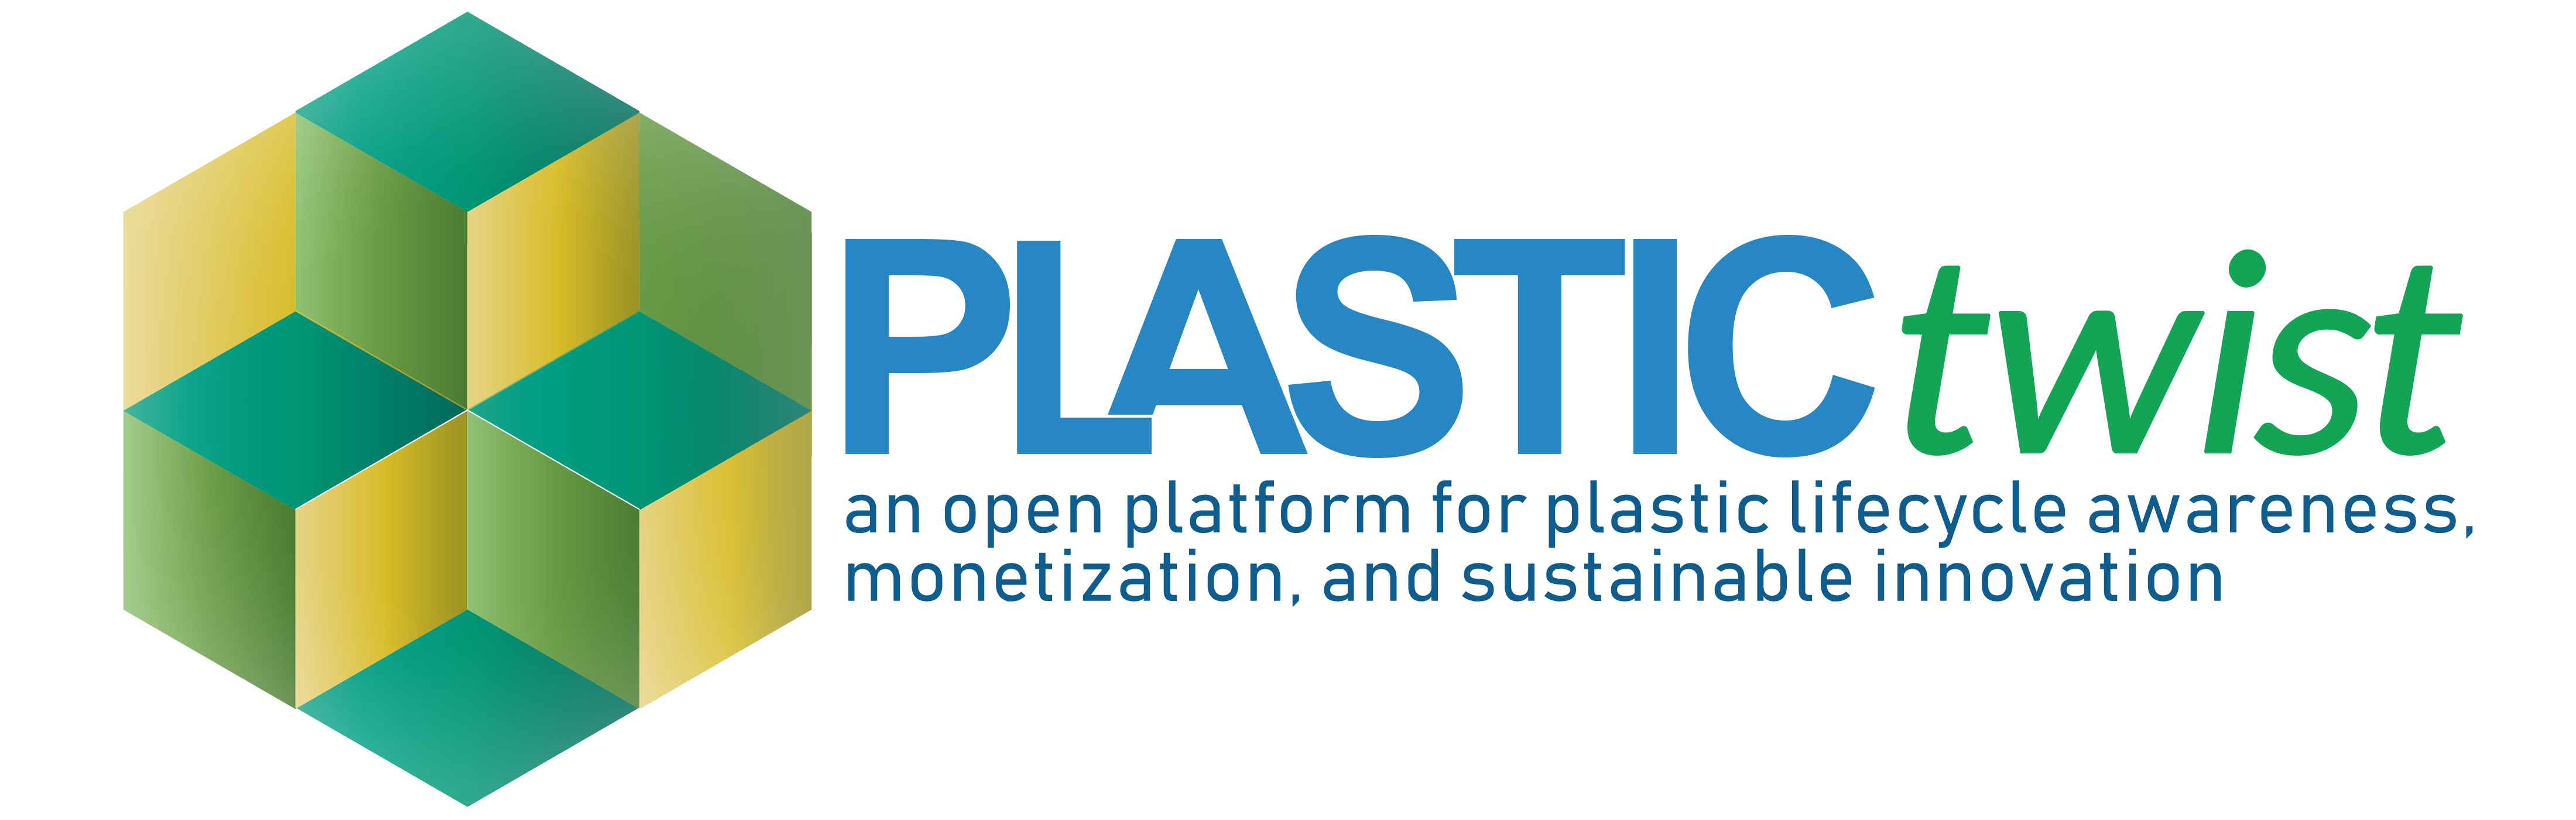 PlasticTwist: An Open Platform for Plastic Lifecycle Awareness, Monetization and Sustainable Innovation